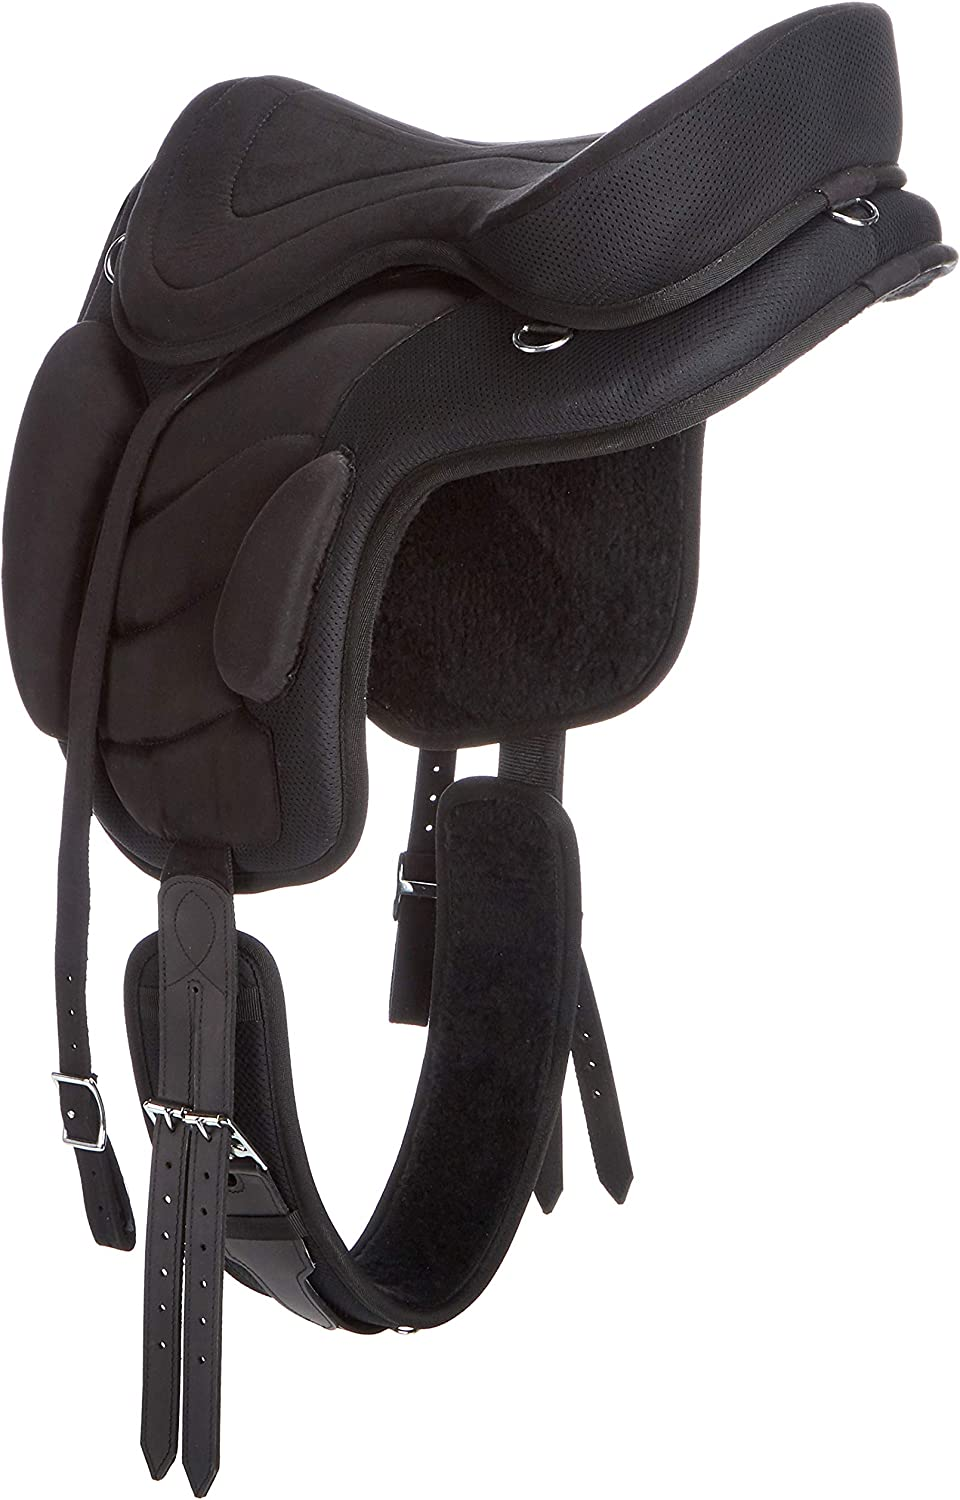 Cwell Equine New Synthetic All Purpose Treeless Saddle BLACK Sizes 16//16.5//17 17.5